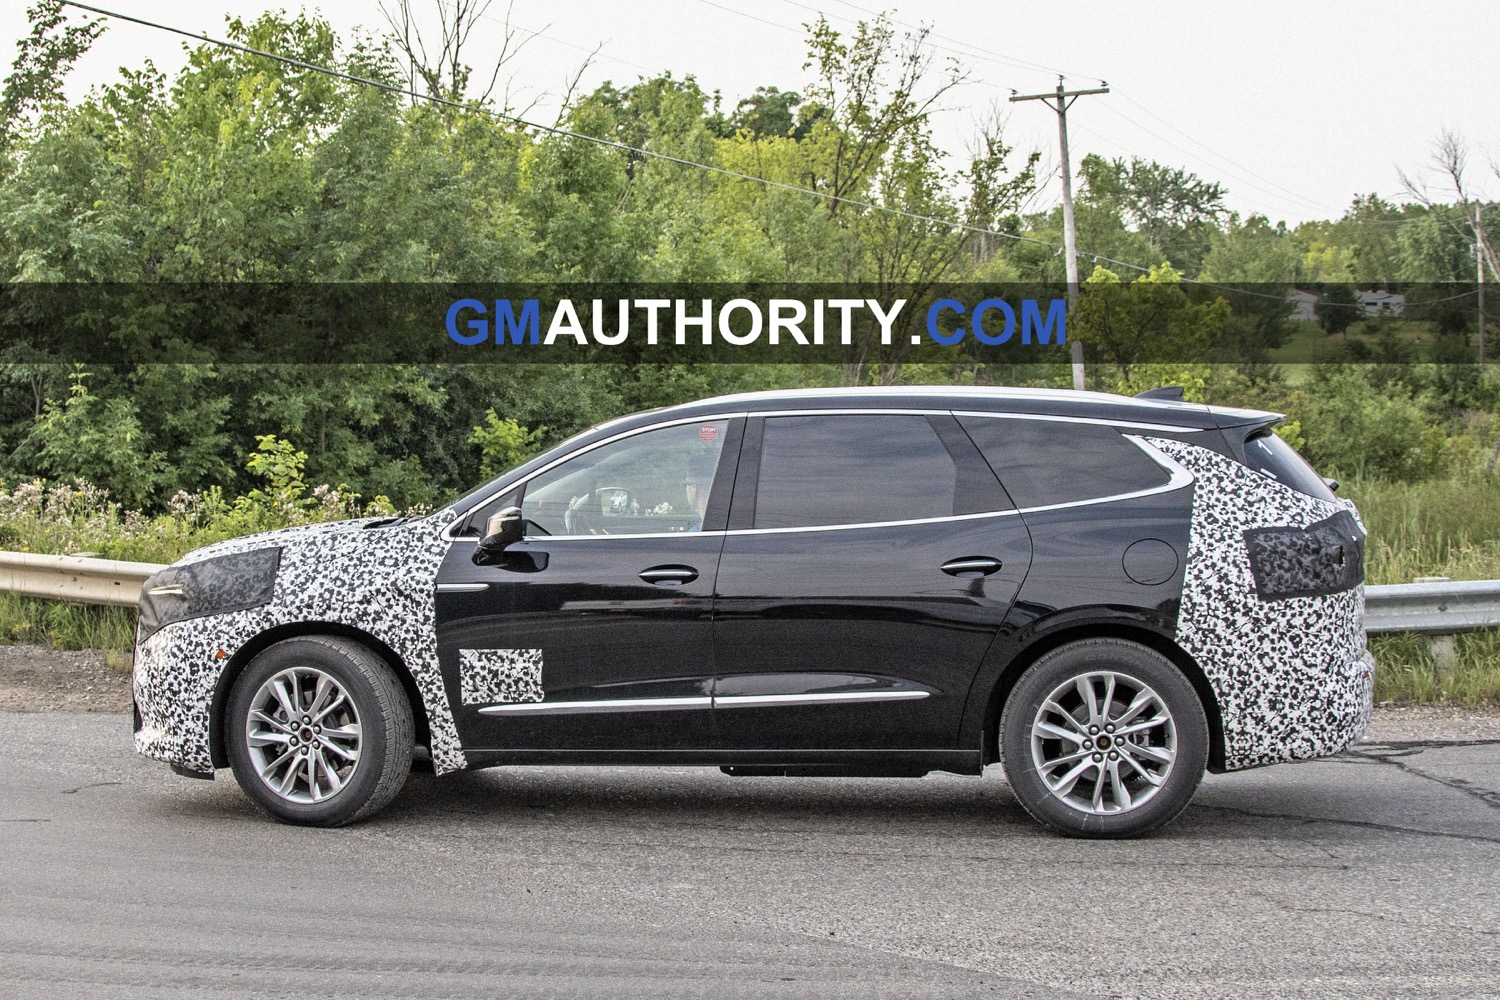 Buick Enclave Refresh Pushed Back To 2022 | Gm Authority New 2022 Buick Enclave Build And Price, Cargo Space, Cost